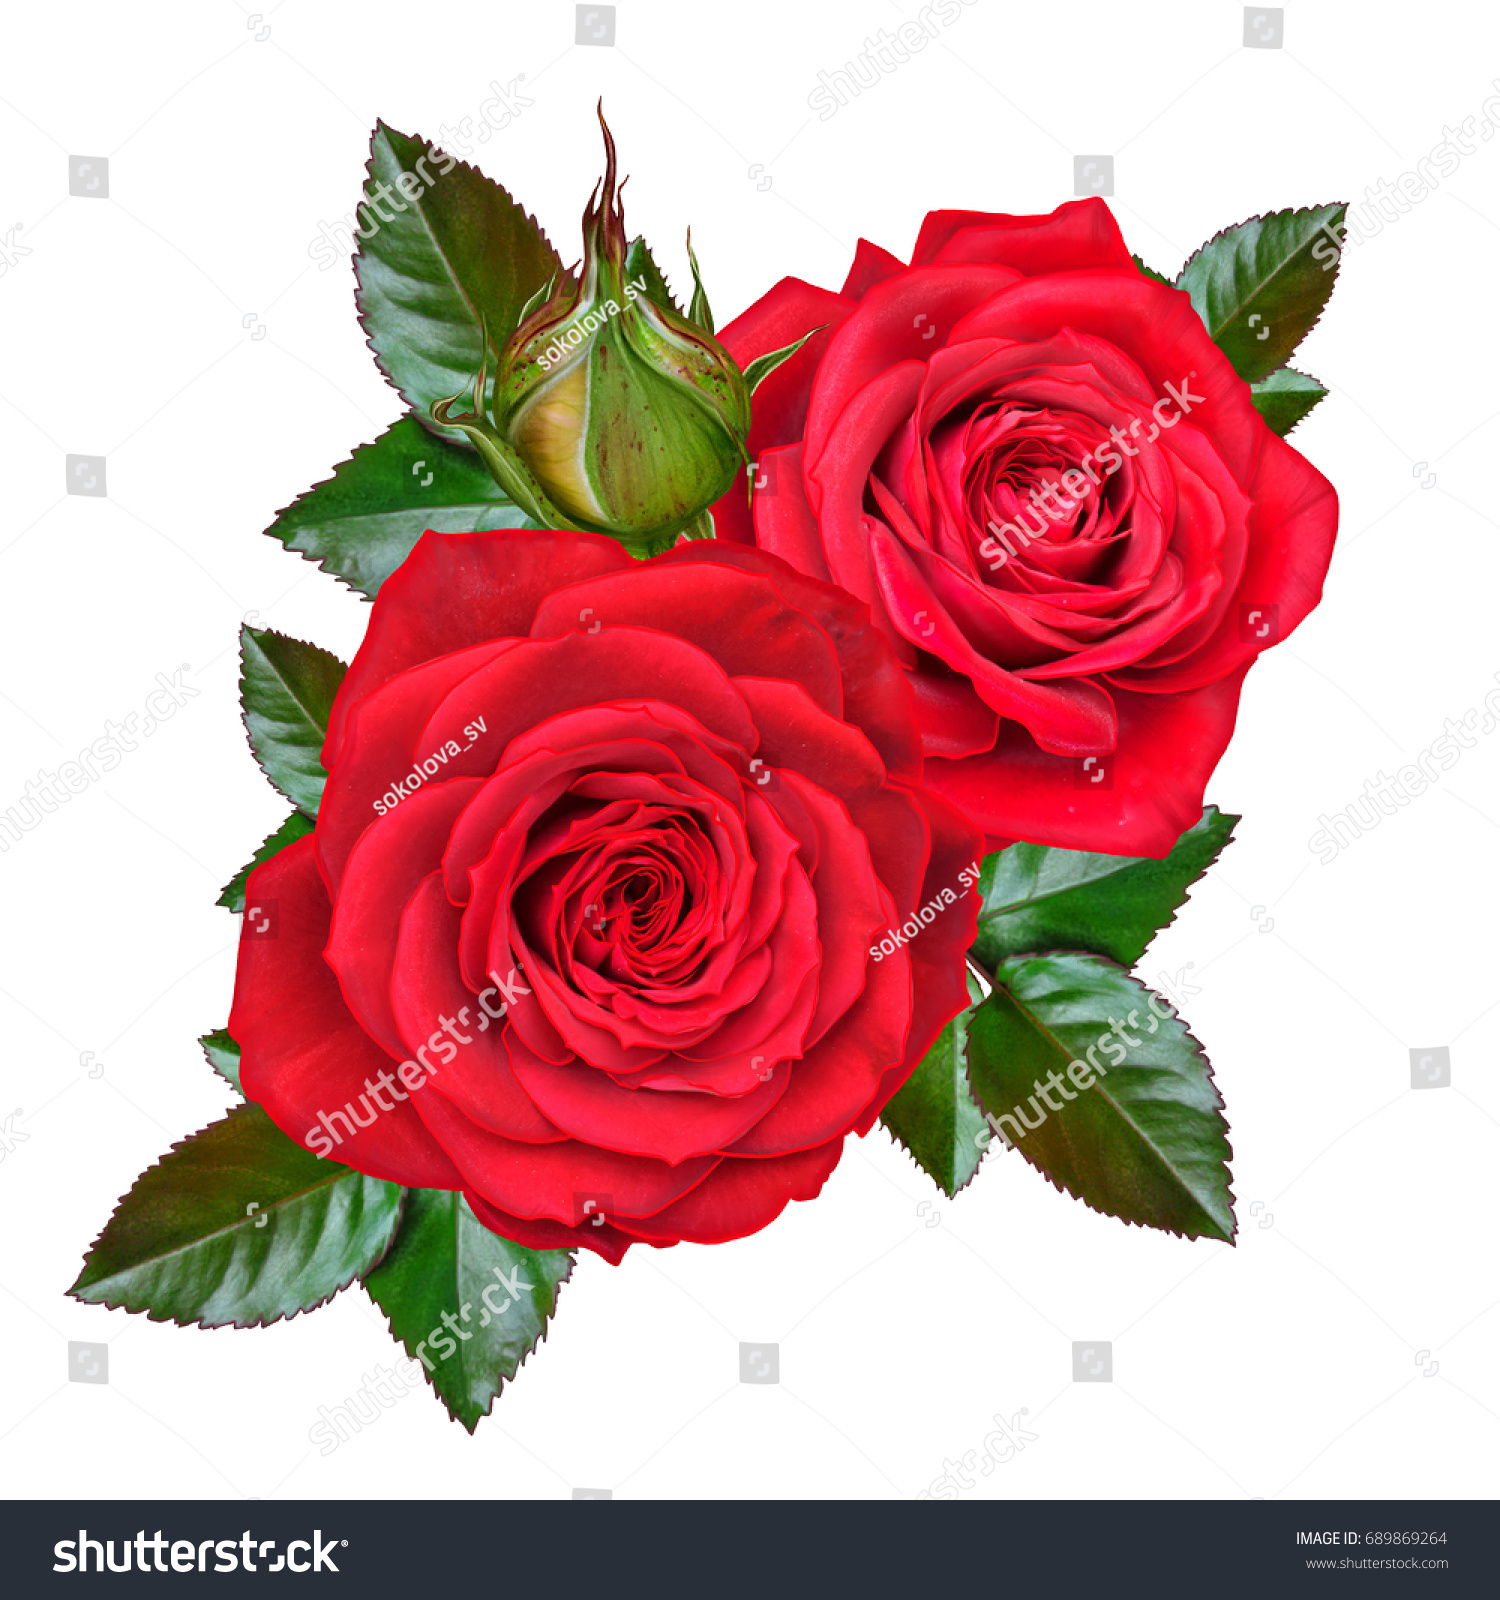 Flower composition bud beautiful red rose stock illustration flower composition a bud of a beautiful red rose and green leaves isolated on izmirmasajfo Choice Image